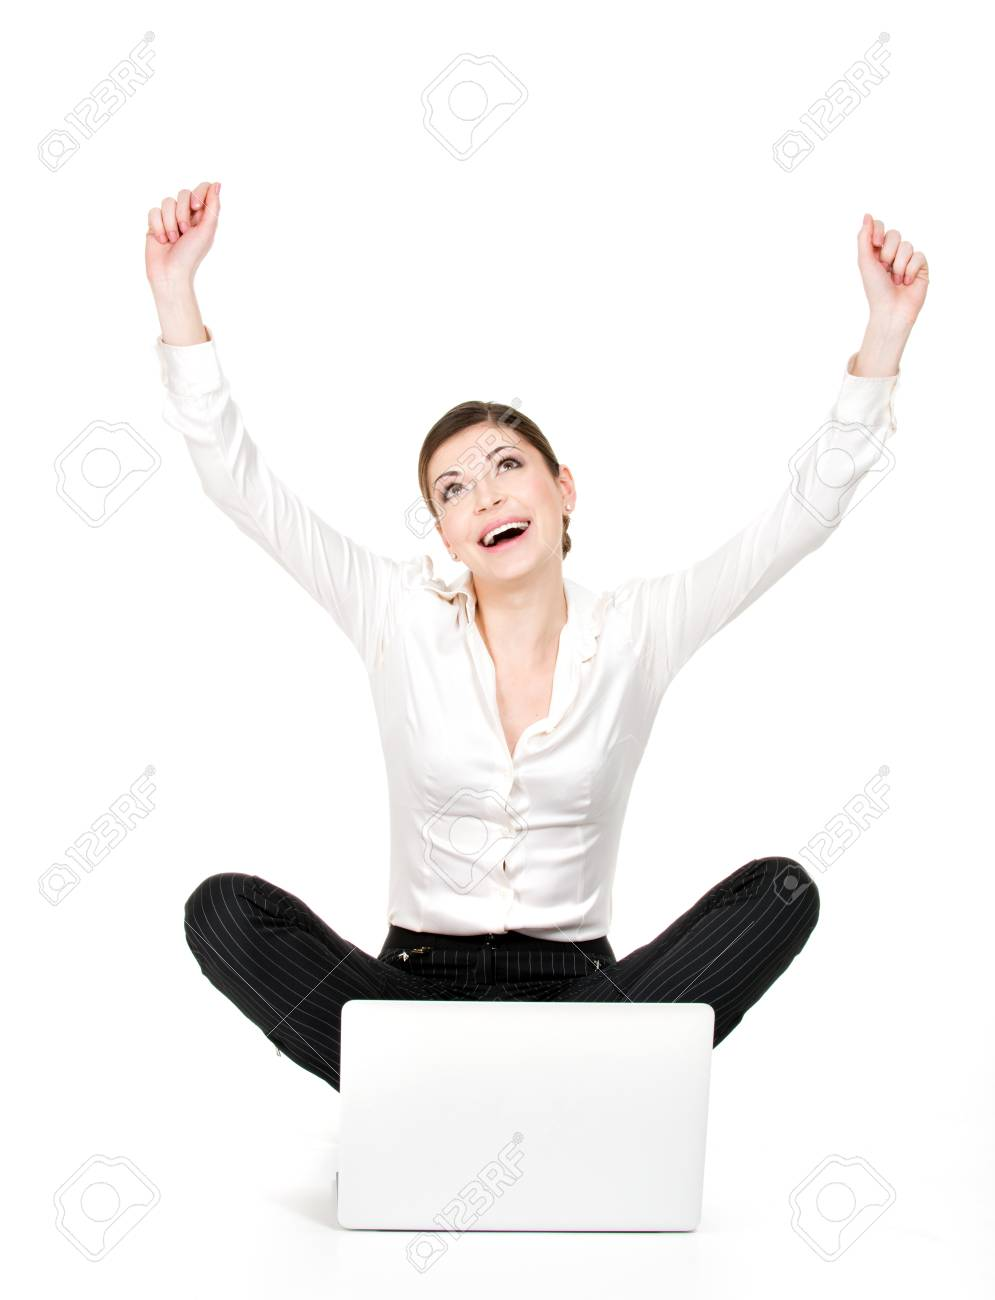 Successful business woman with laptop raised hands up - isolated on white. Stock Photo - 18824657